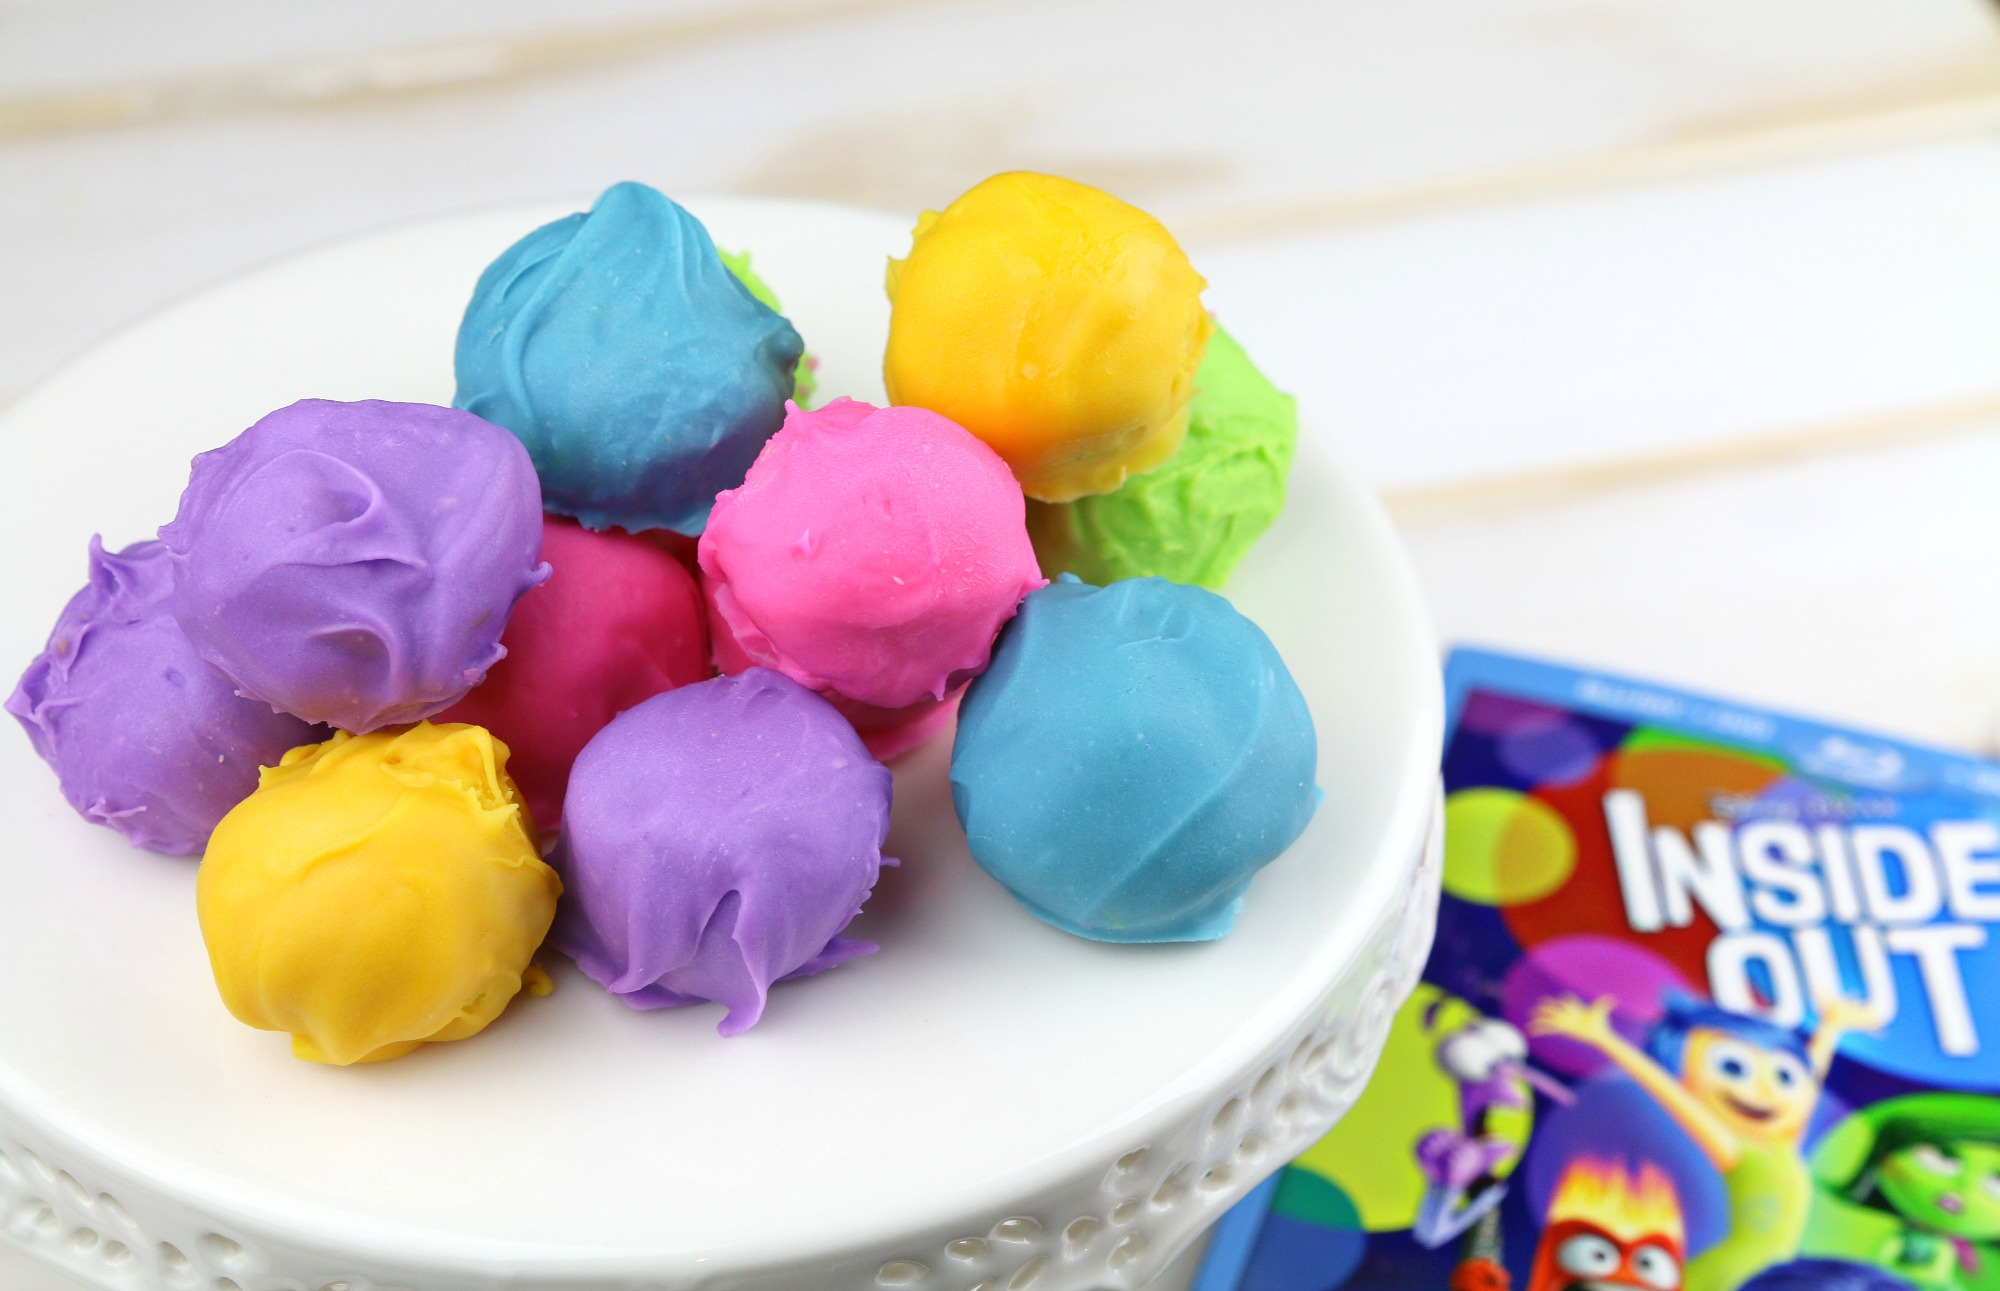 Disney Pixar Inside Out Truffles